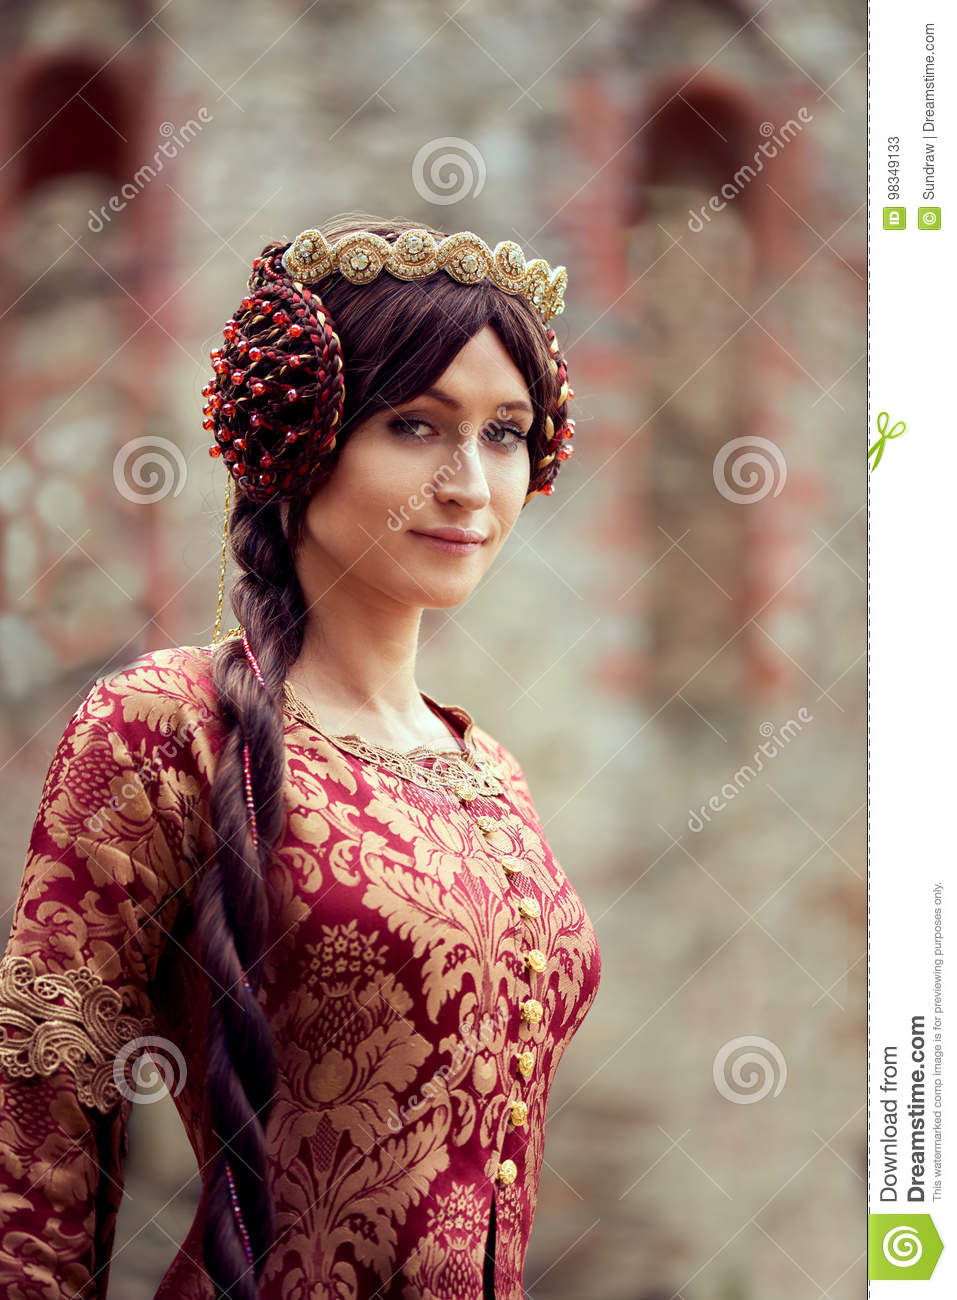 Beautiful Isabella of France, queen of England on Middle Ages period